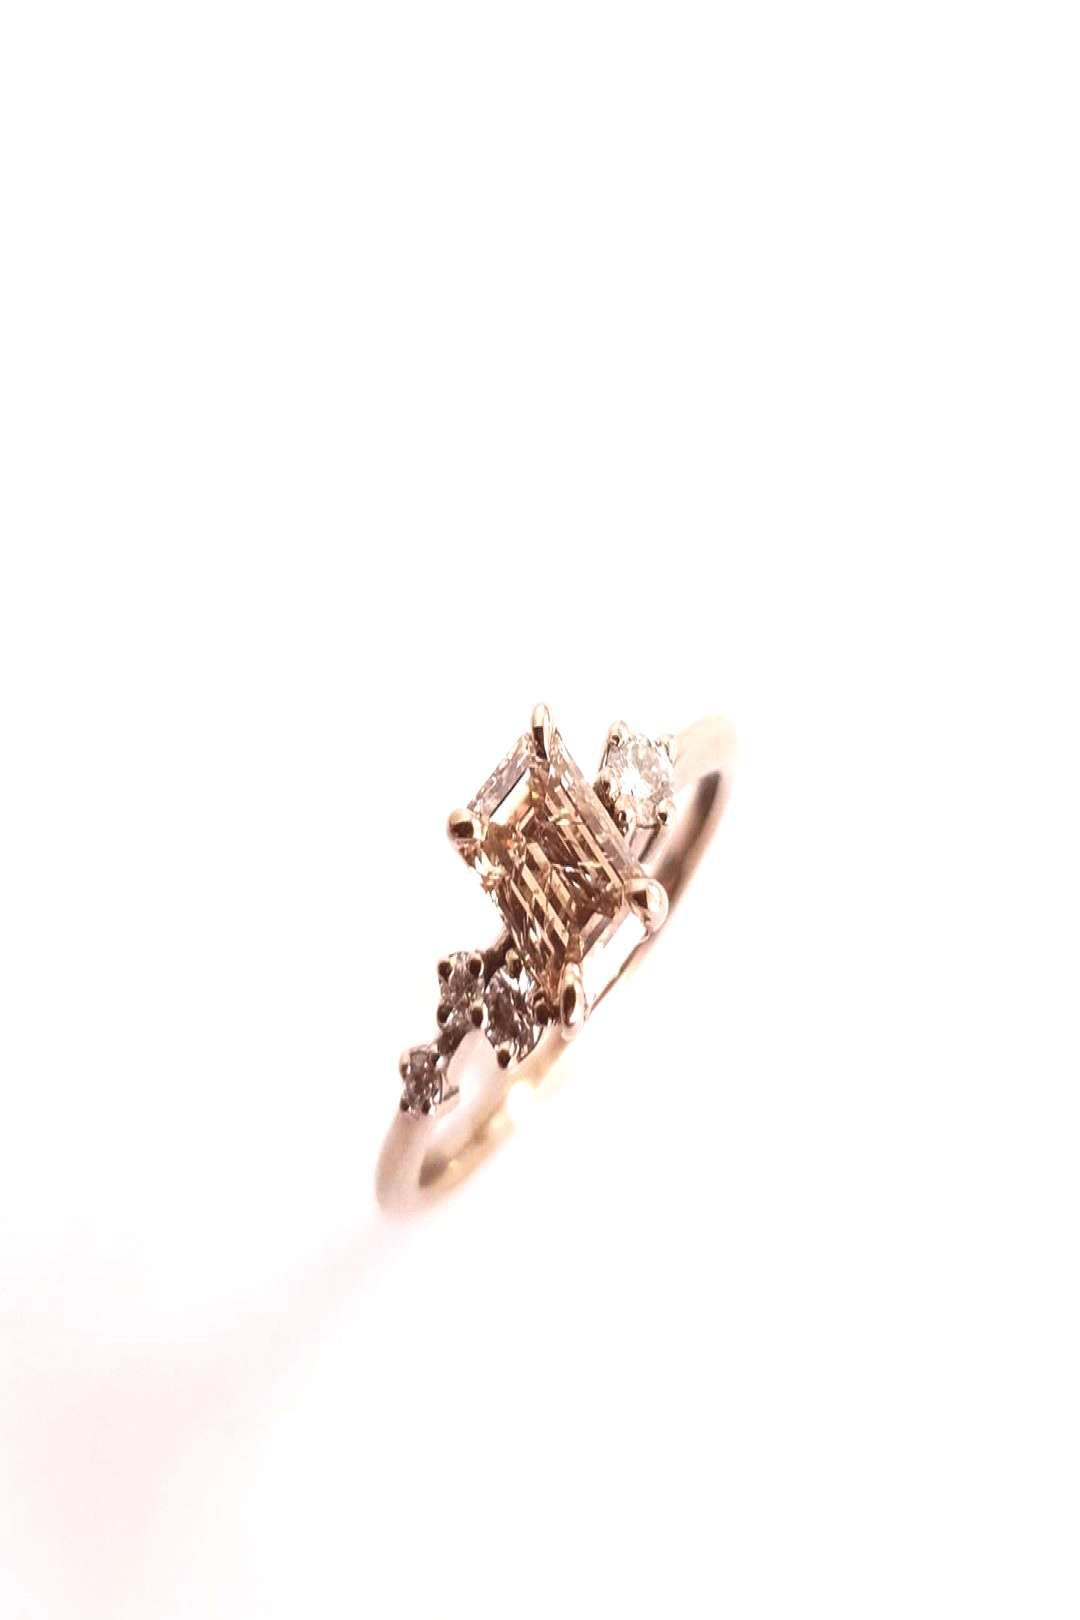 #congratulations #recently #february #matthew #melissa #222020 #photo #with #this #who #got #and #to #by #on Congratulations to Matthew and Melissa who recently got with thisYou can find White gold and more...